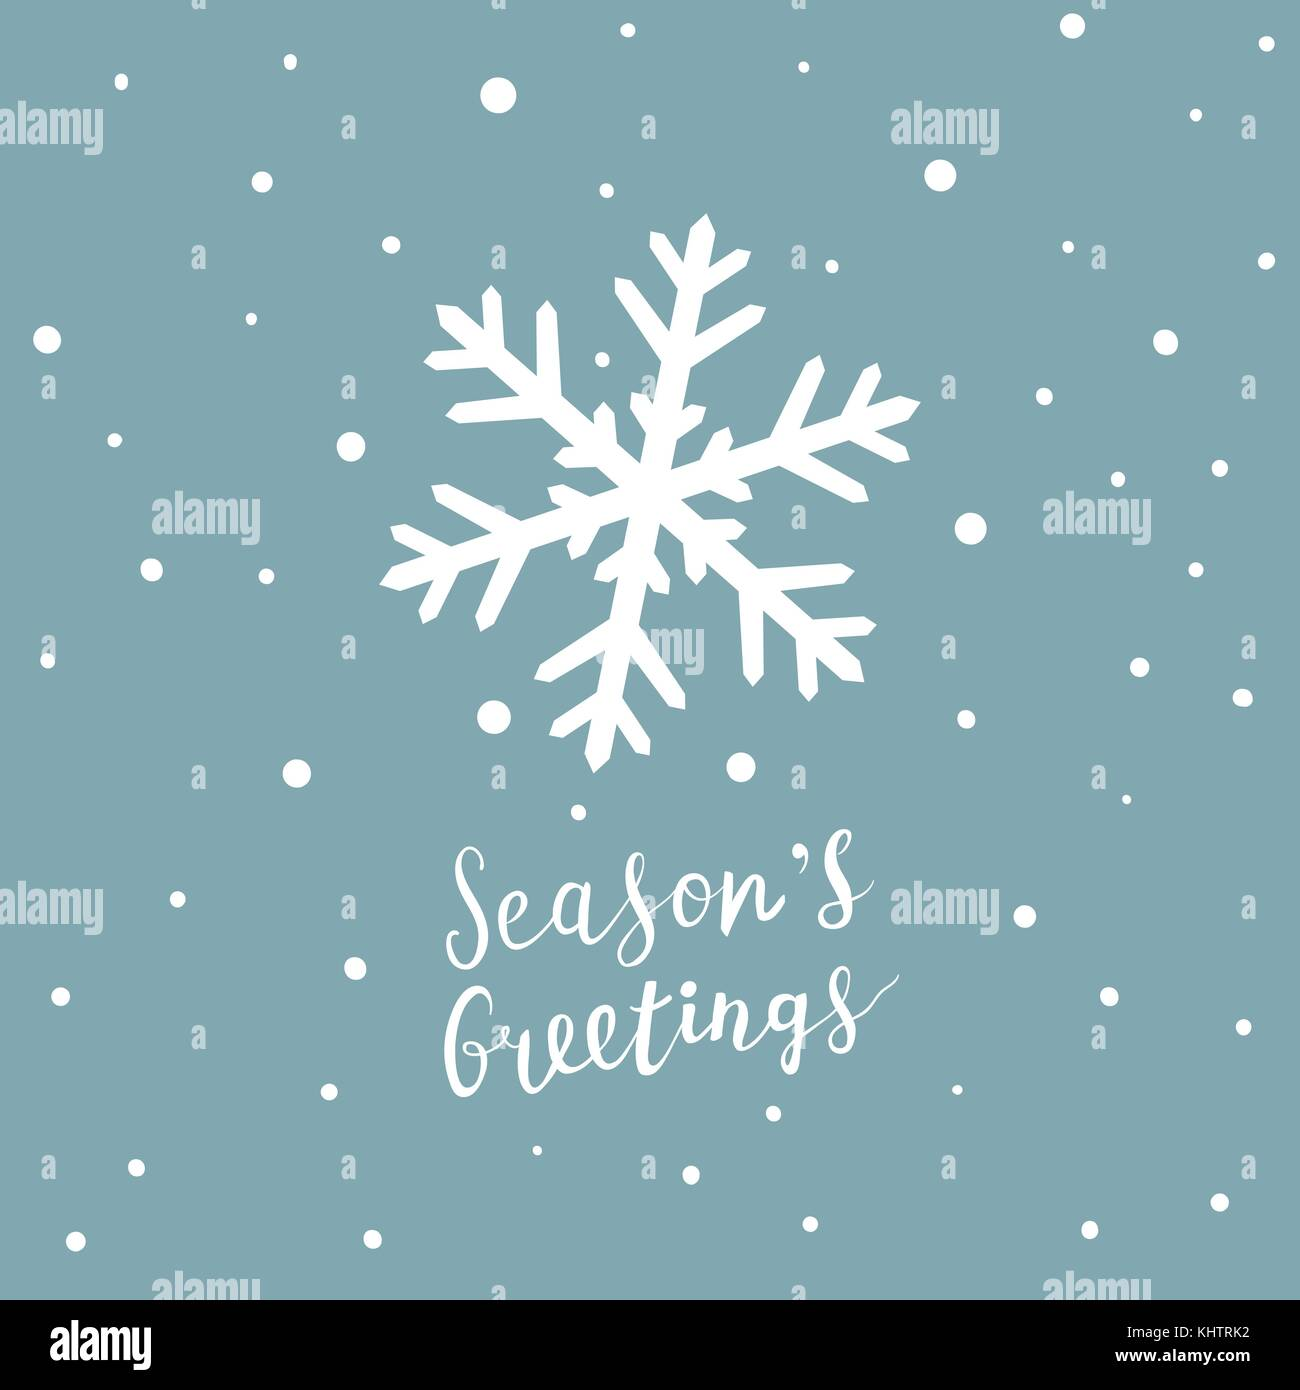 Christmas card with snowflake and hand written lettering, Christmas design elements - Stock Image